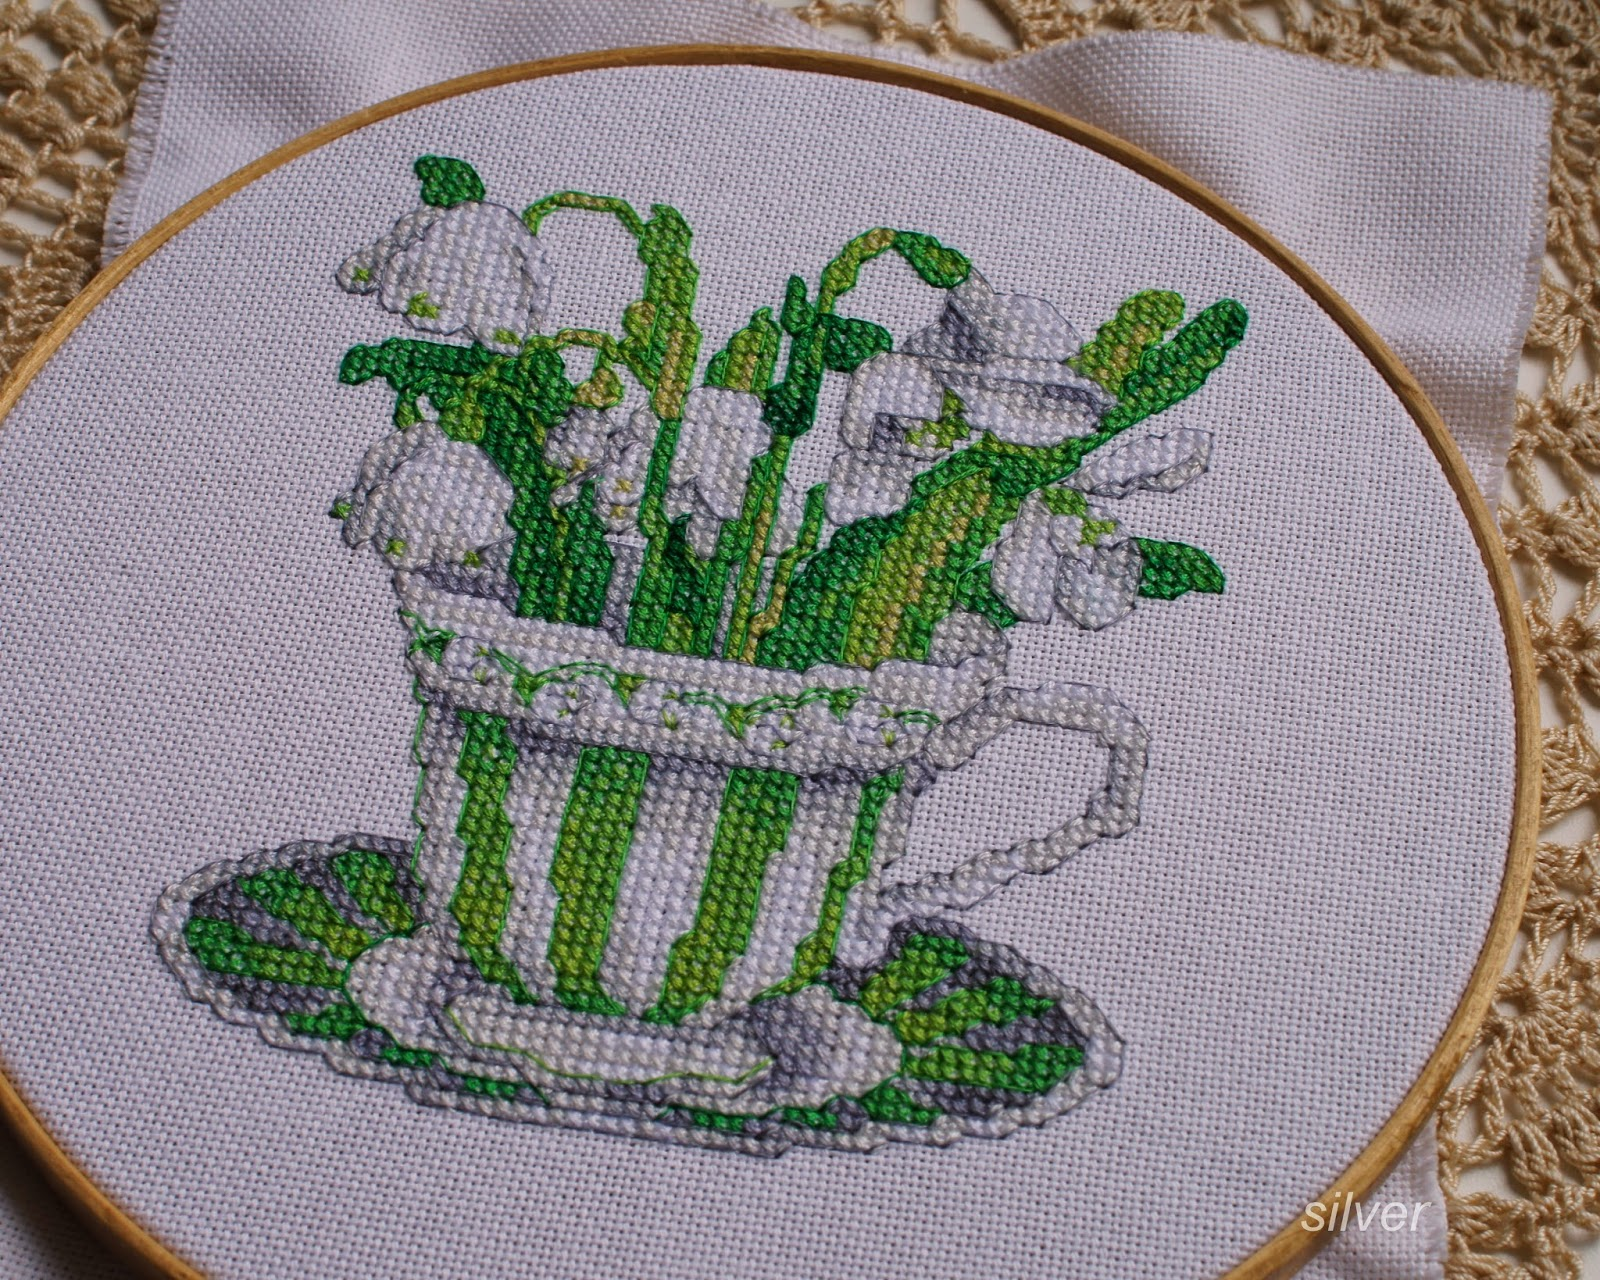 The Vermillion Stitchery Teacup Posie вышитые подснежники